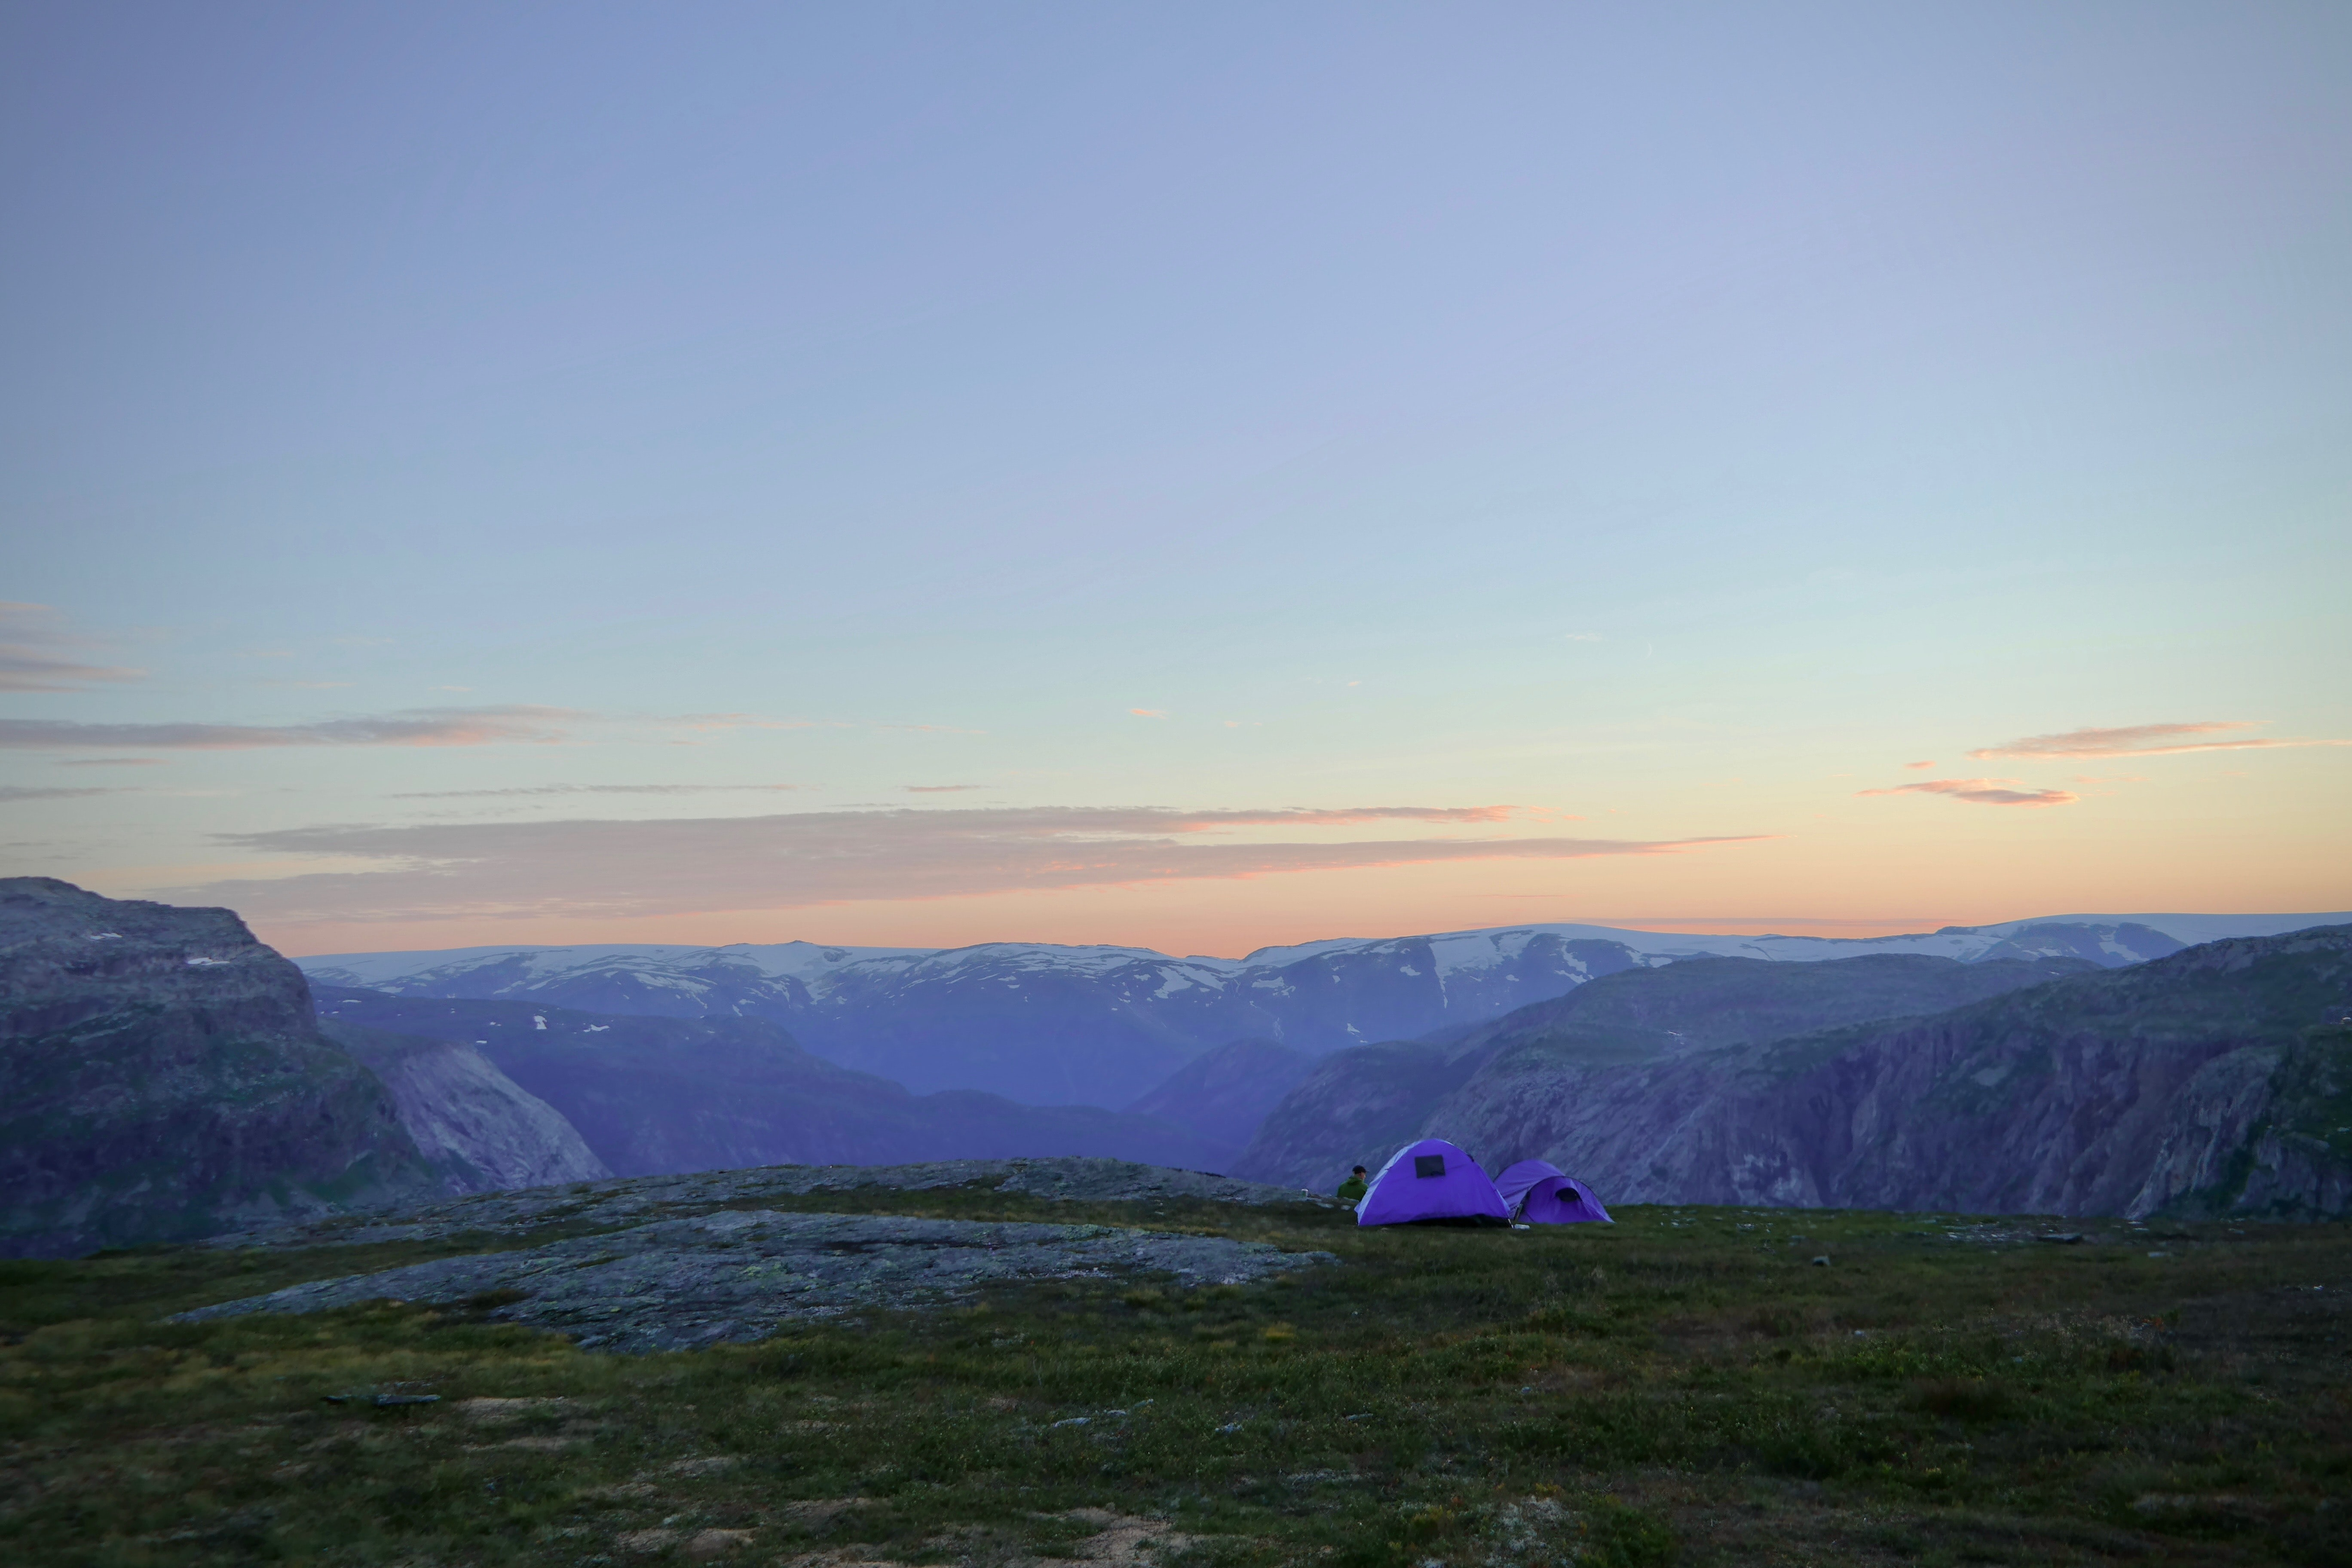 purple tent on hill at daytime